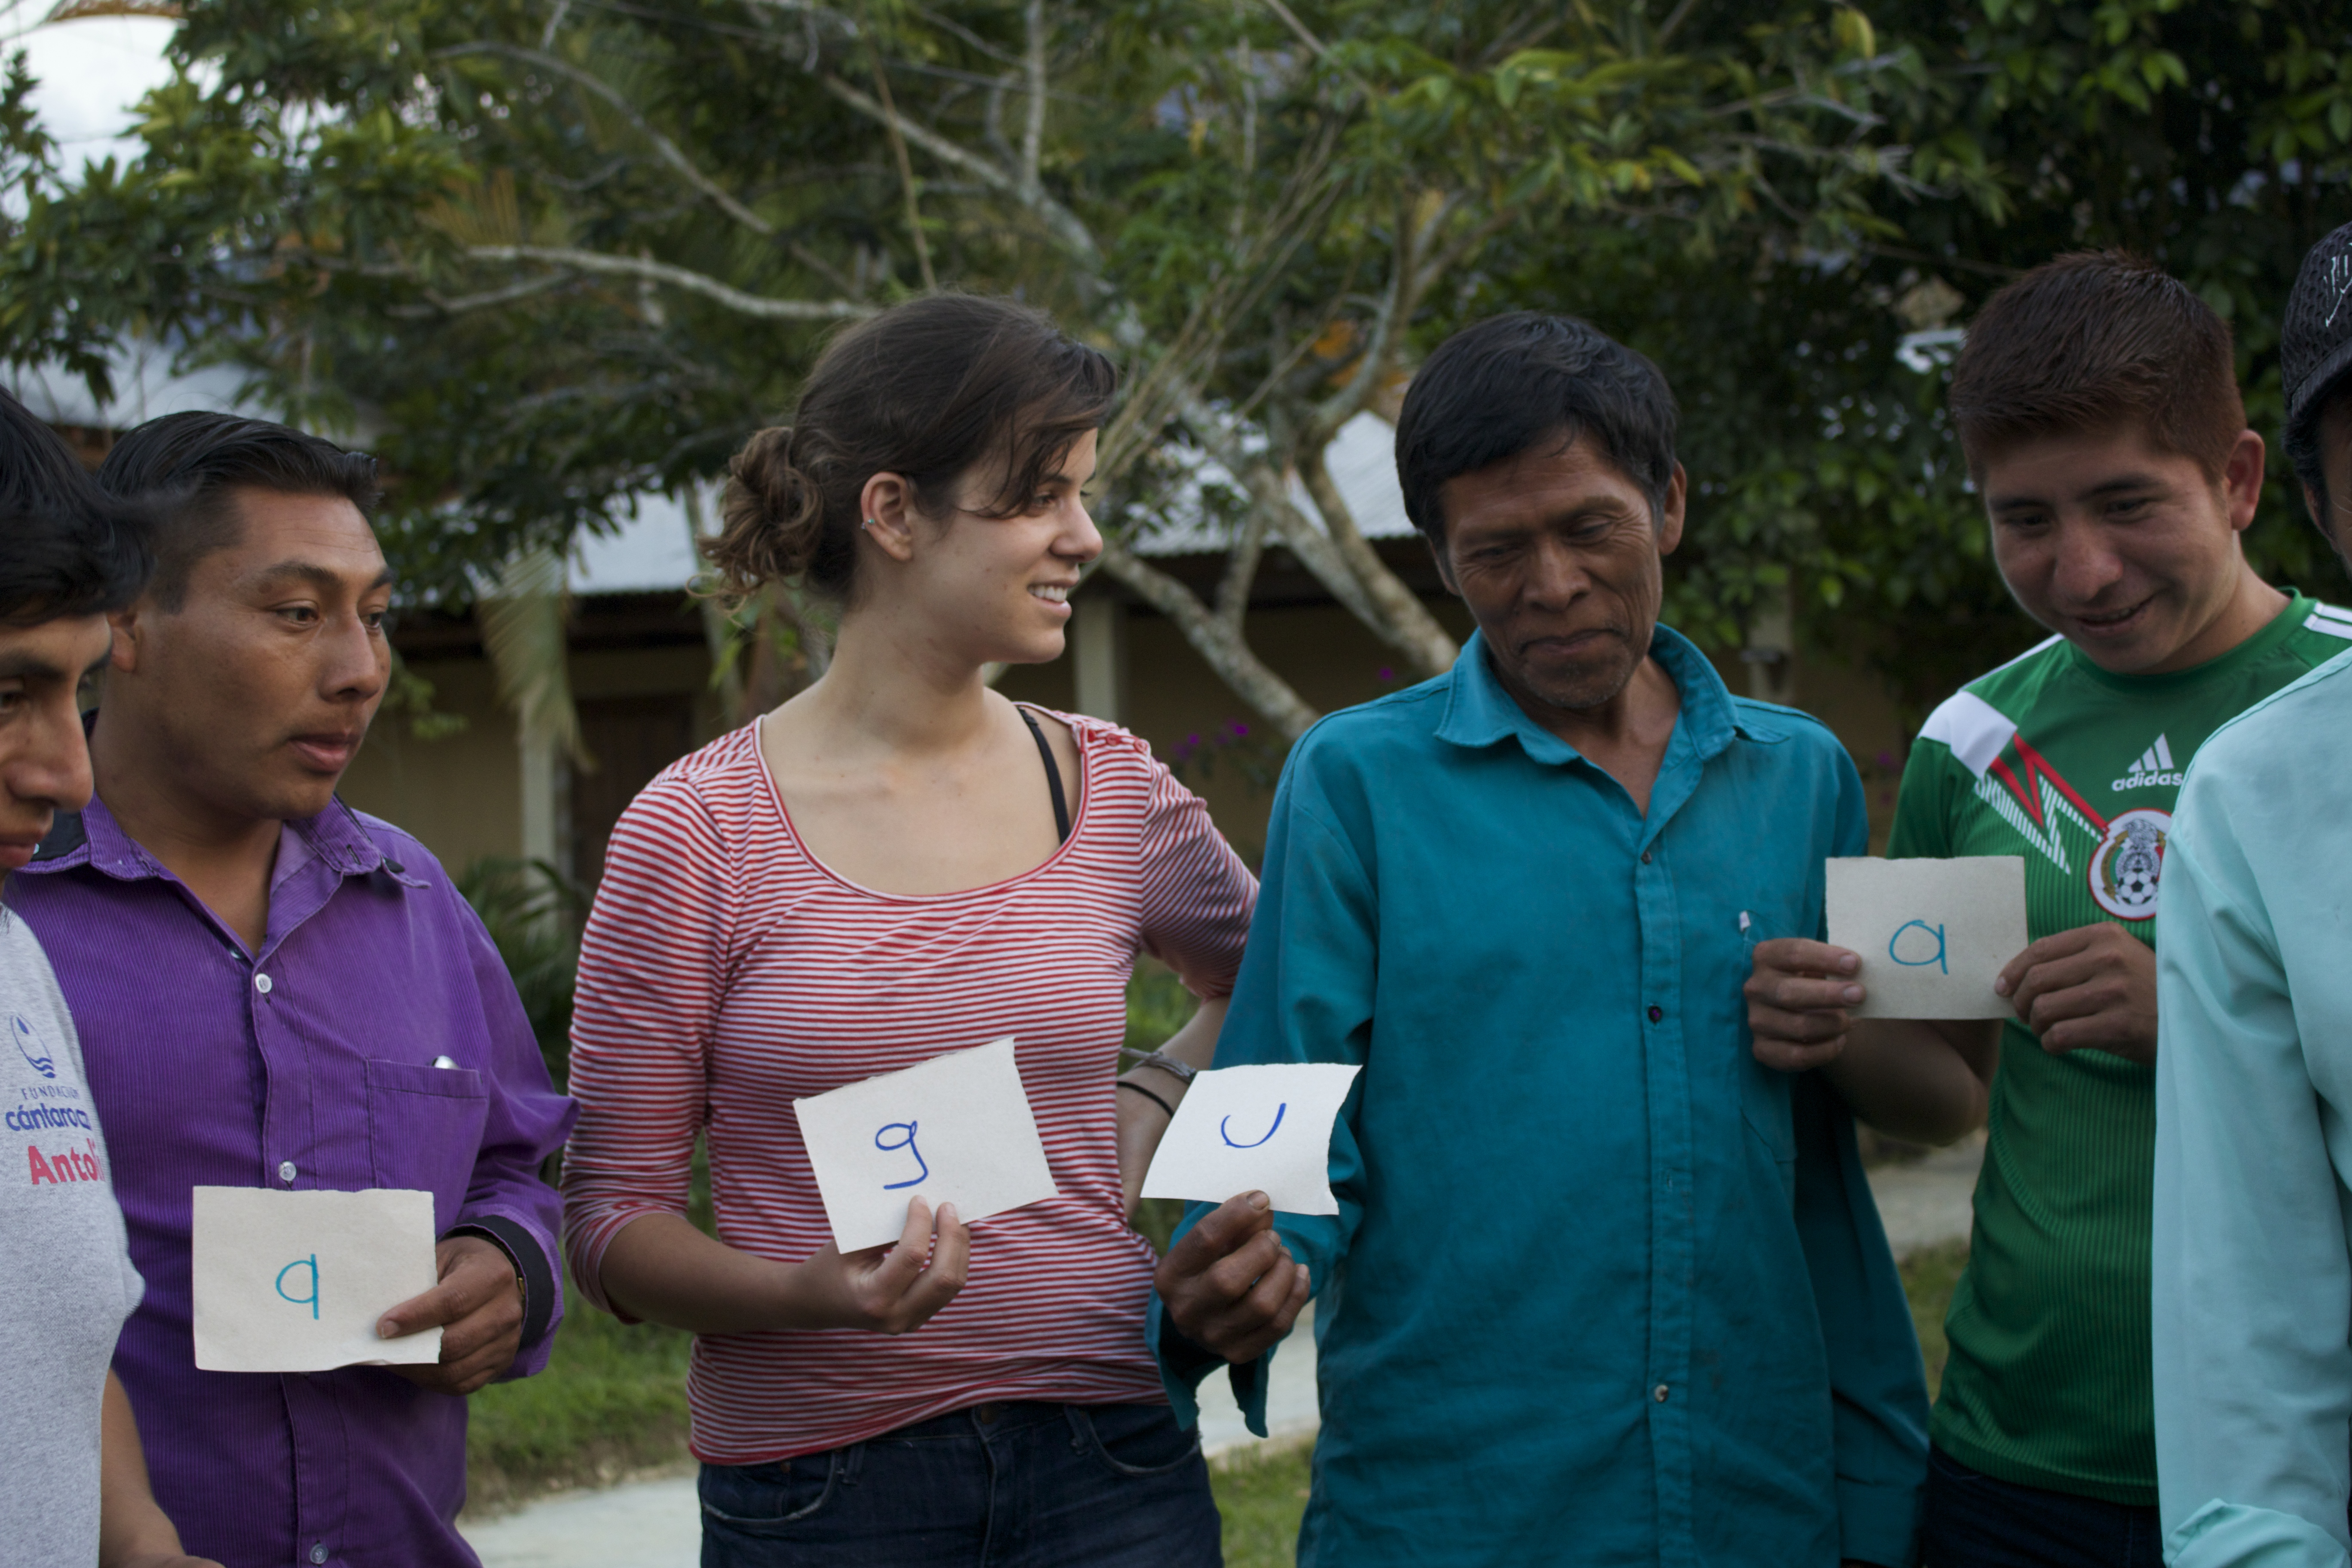 Lindsay volunteering in Chiapas